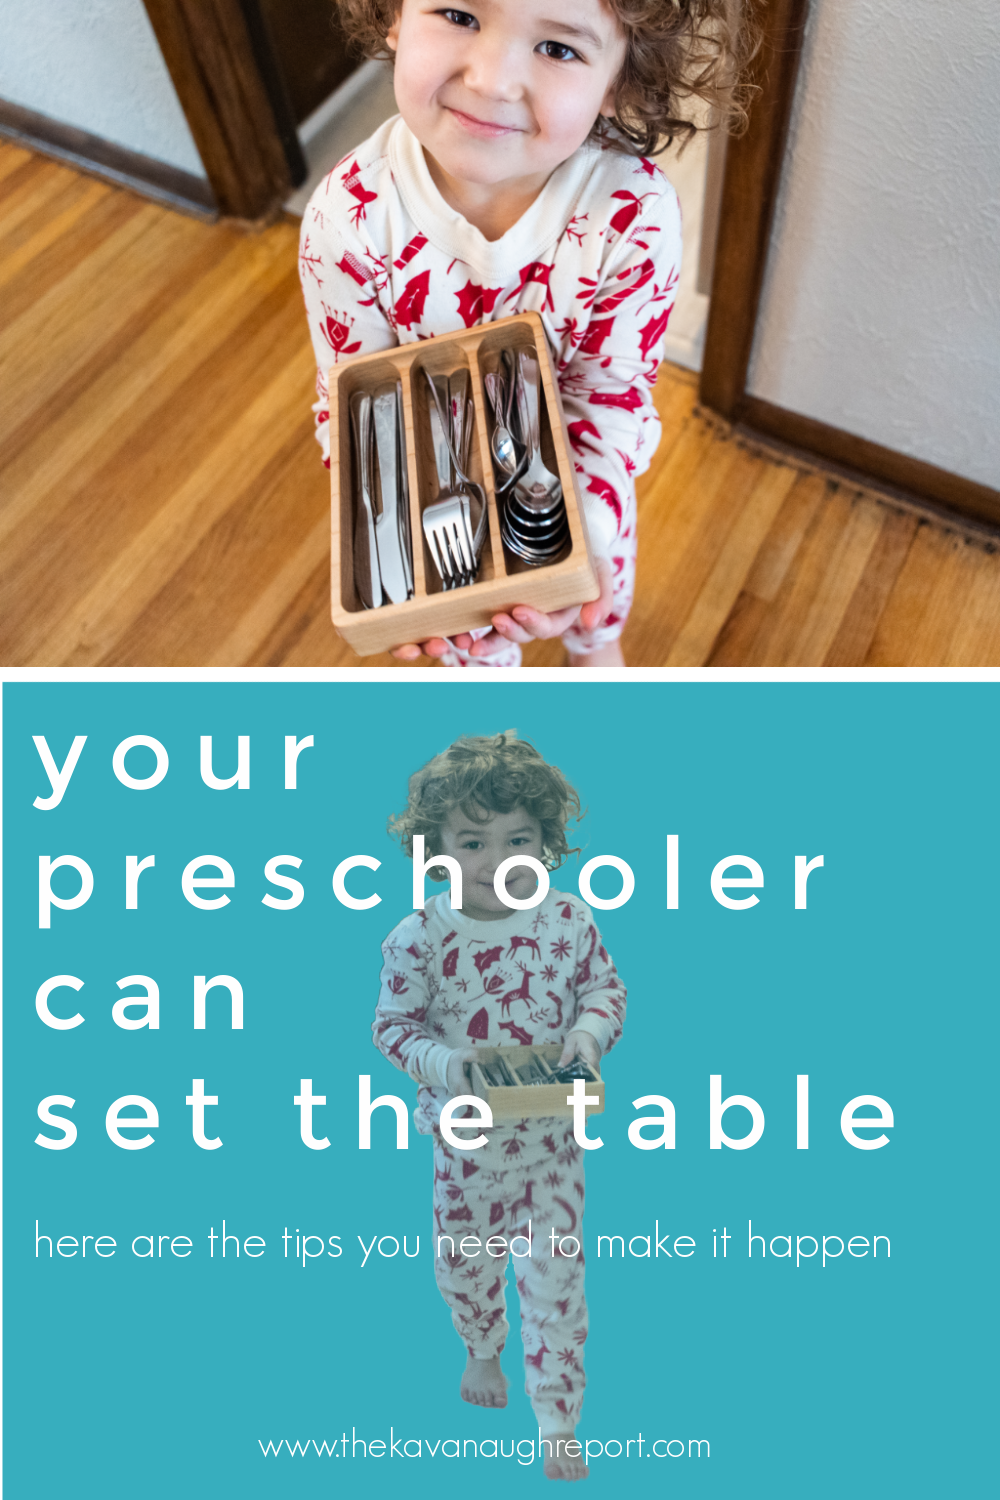 Easy tips for getting your preschooler to set the table. This fun Montessori activity can engage preschoolers in meaningful chores around the house.